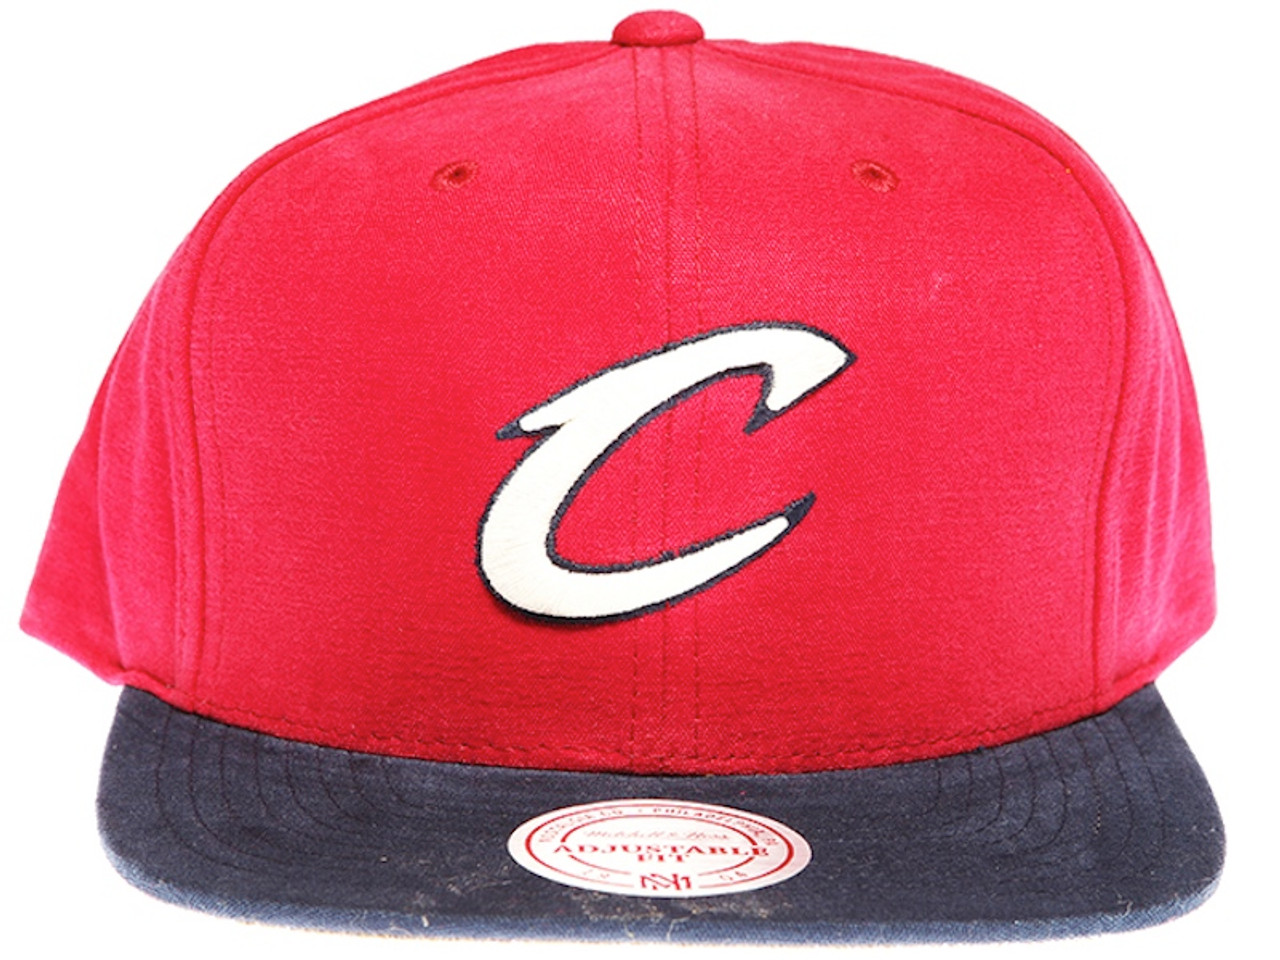 58fe16f8549 Cleveland Cavaliers Sandy 2-Tone Maroon and Navy Mitchell   Ness NBA  Snapback Hat